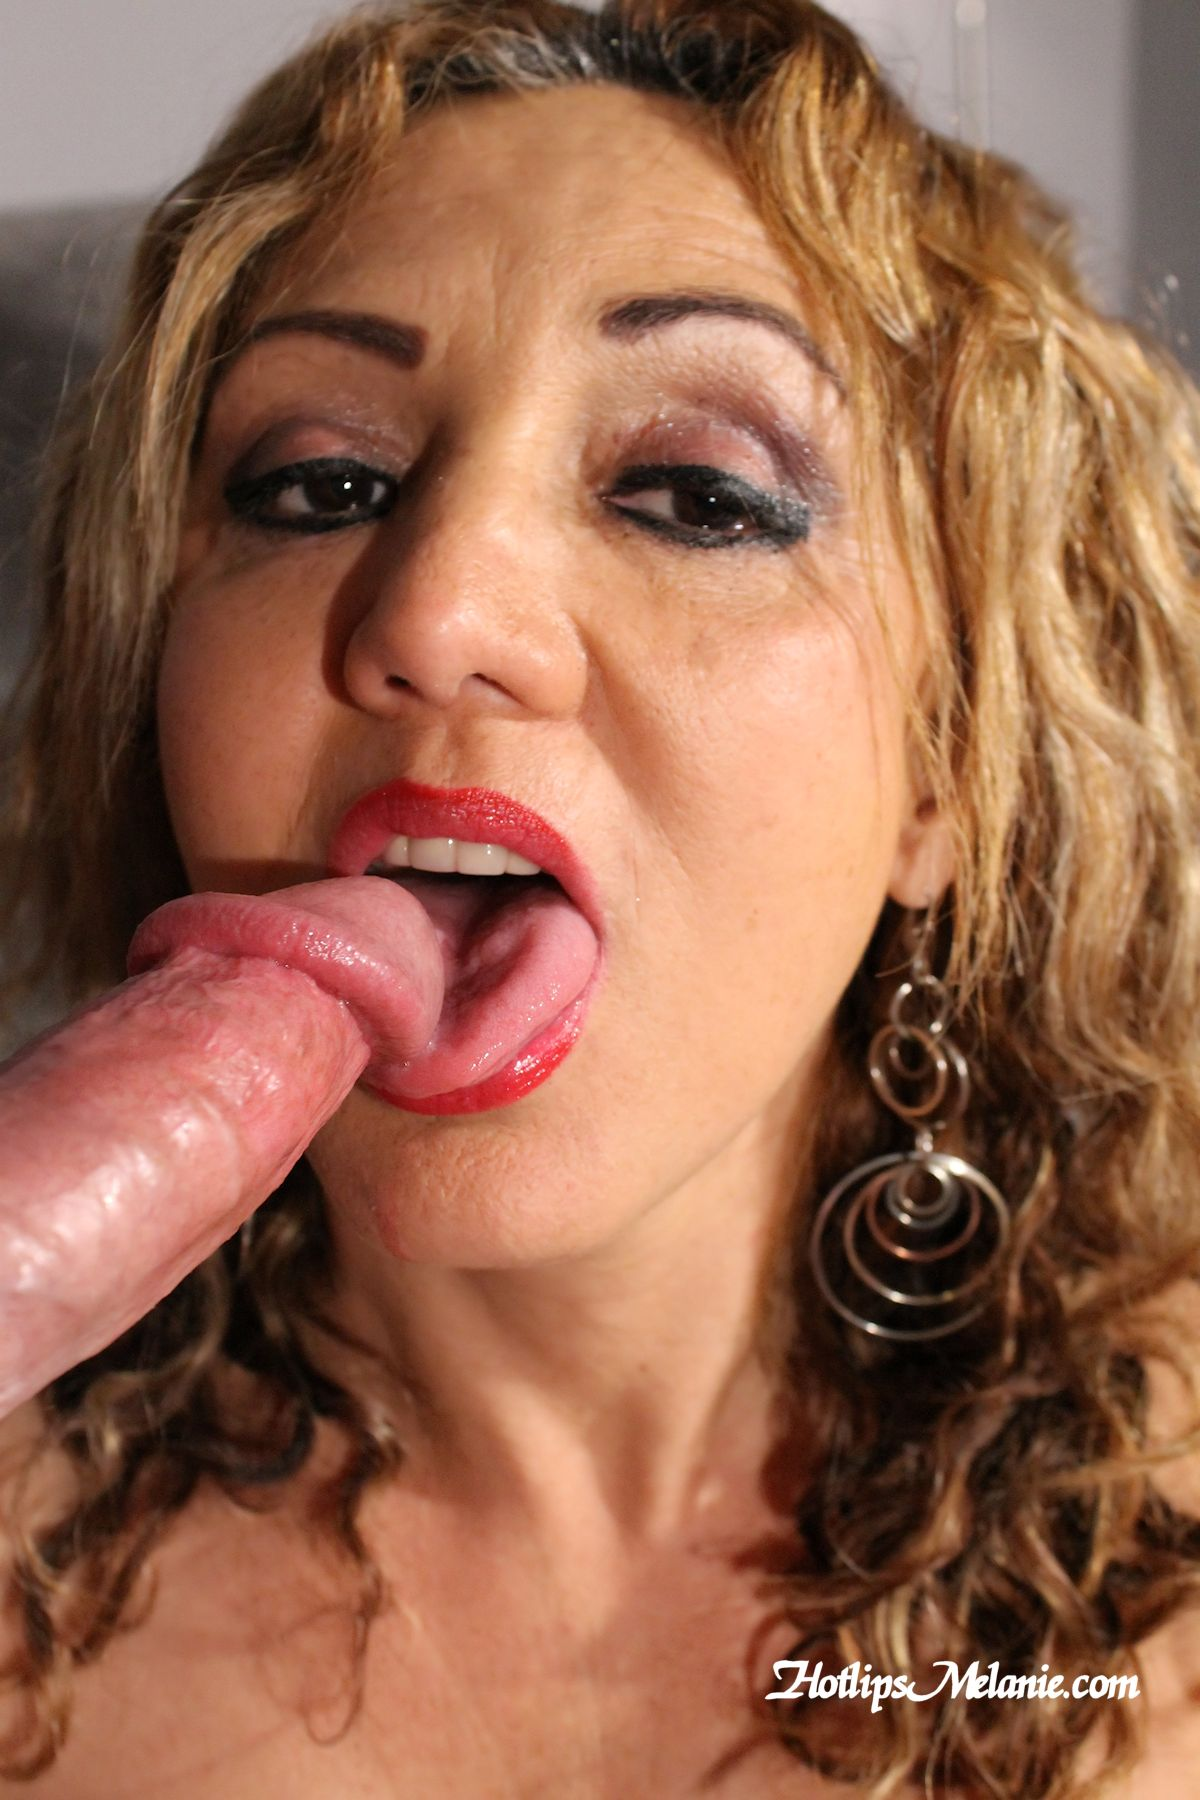 Mature Milf Sucking Dick 88